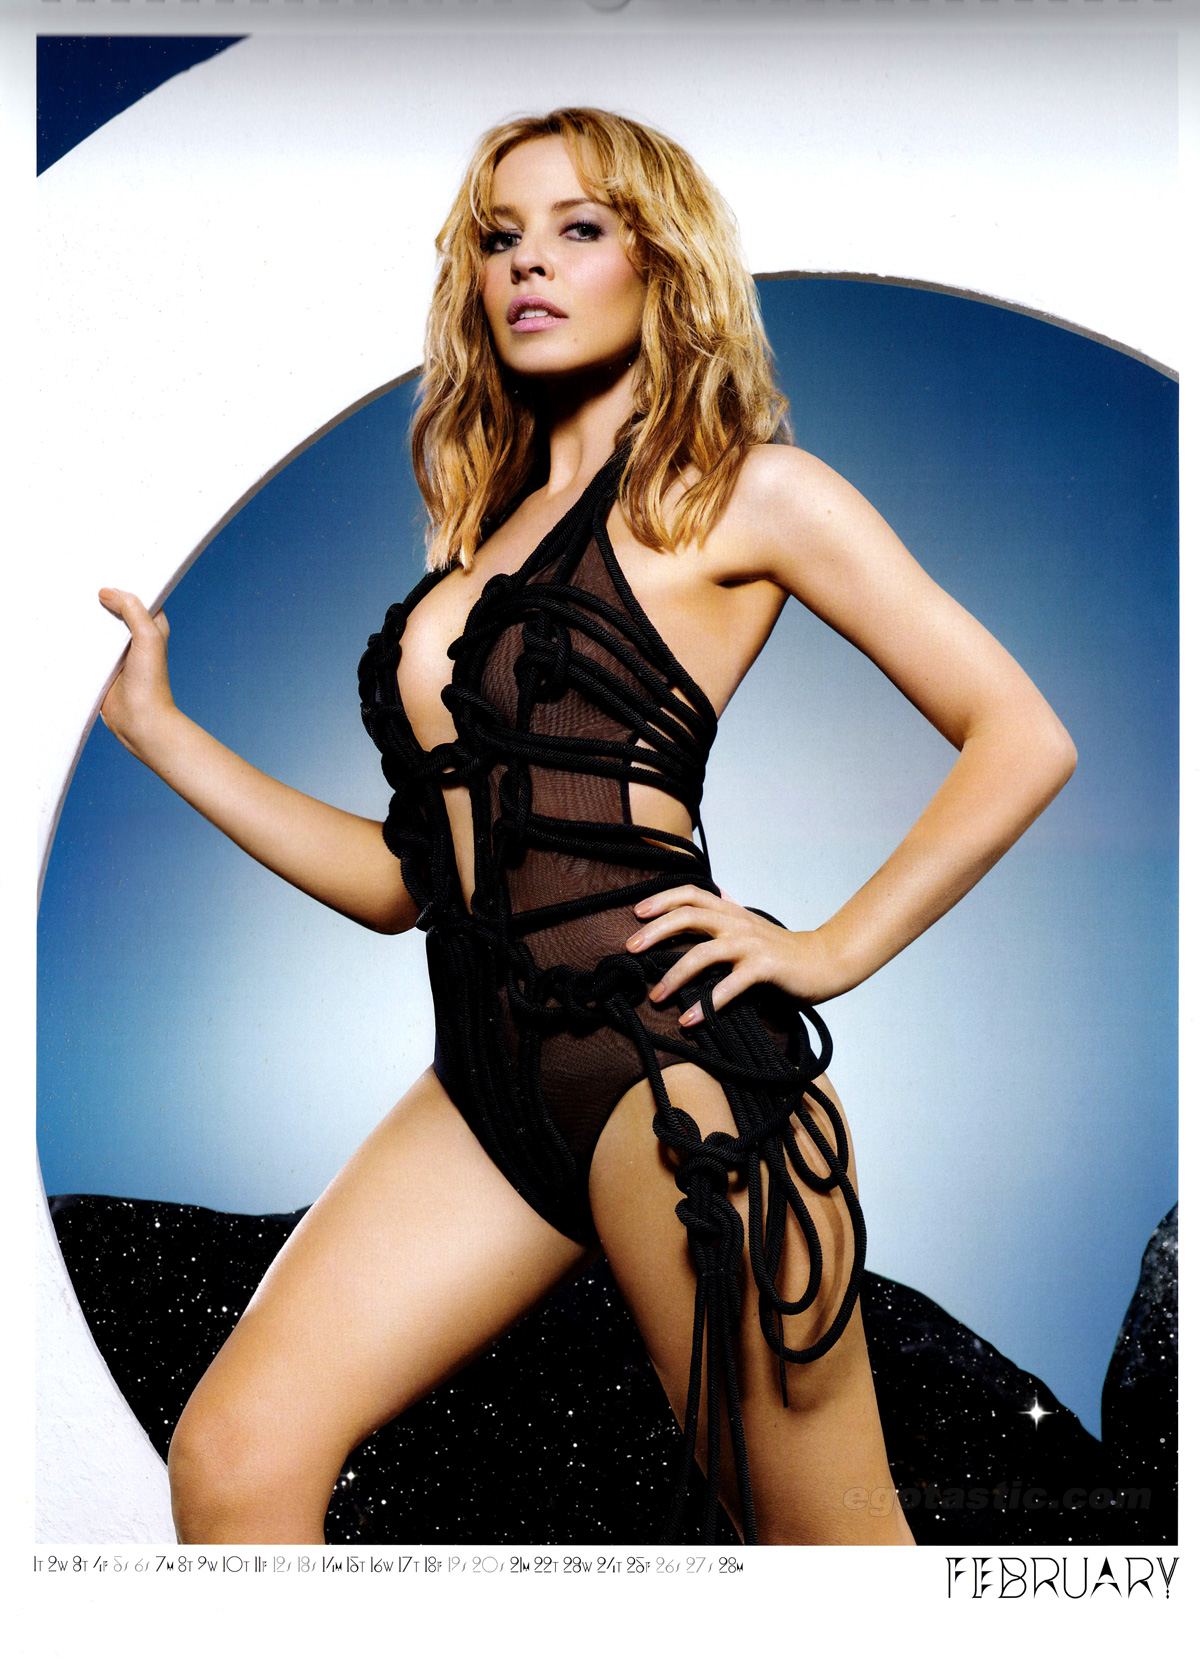 Kylie Minogue 2011 HOT Calendar Shoot – Pictures